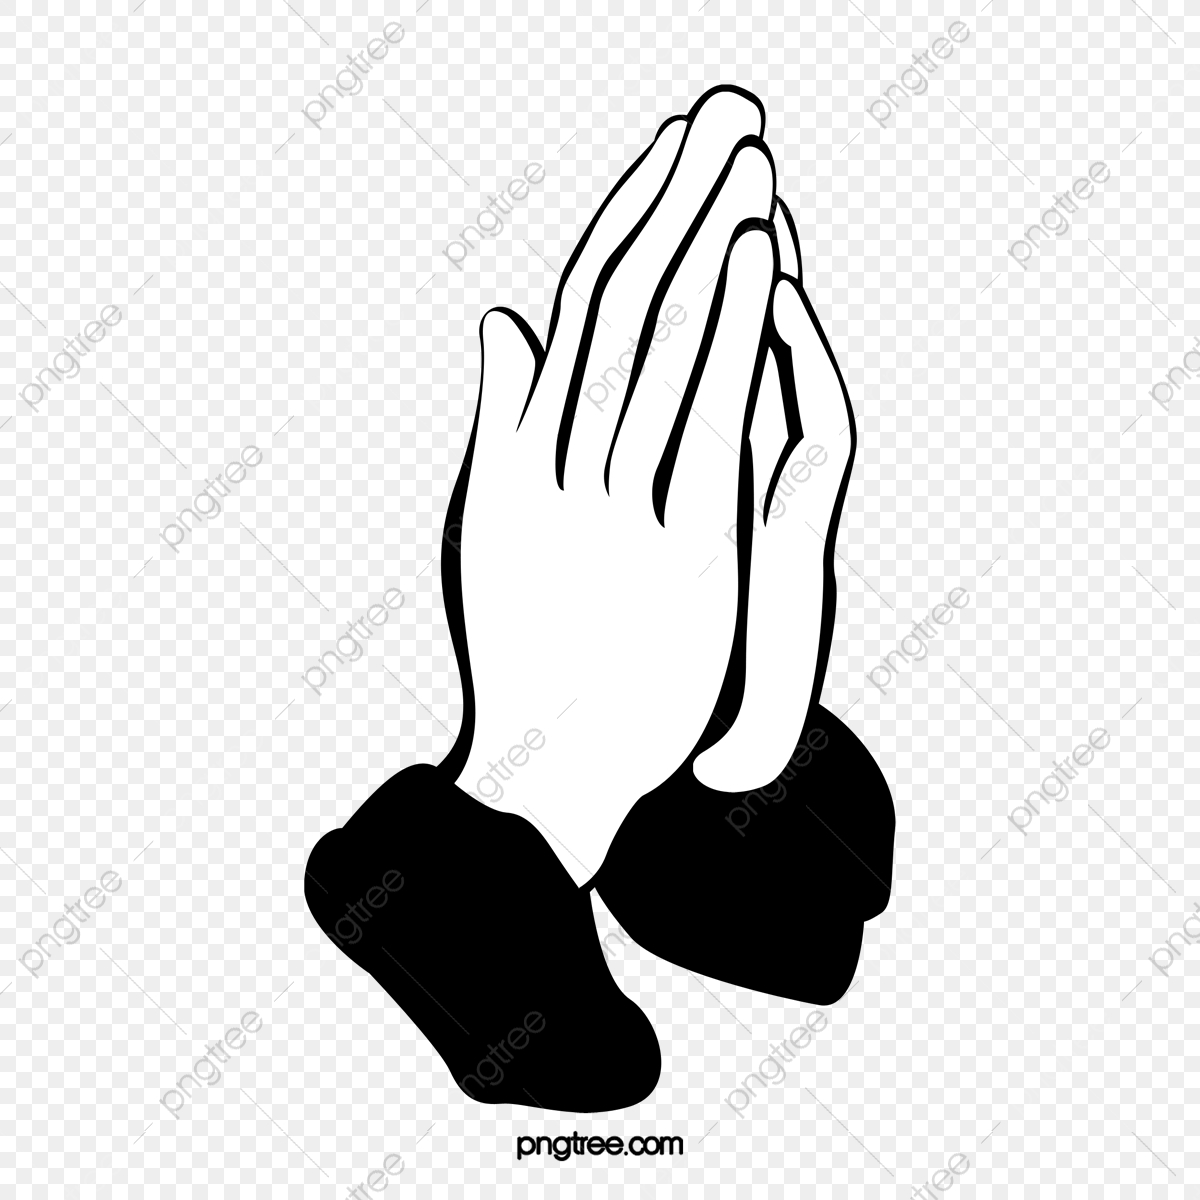 Namaste, Pray, Cartoon Hand Drawing PNG Transparent Clipart.